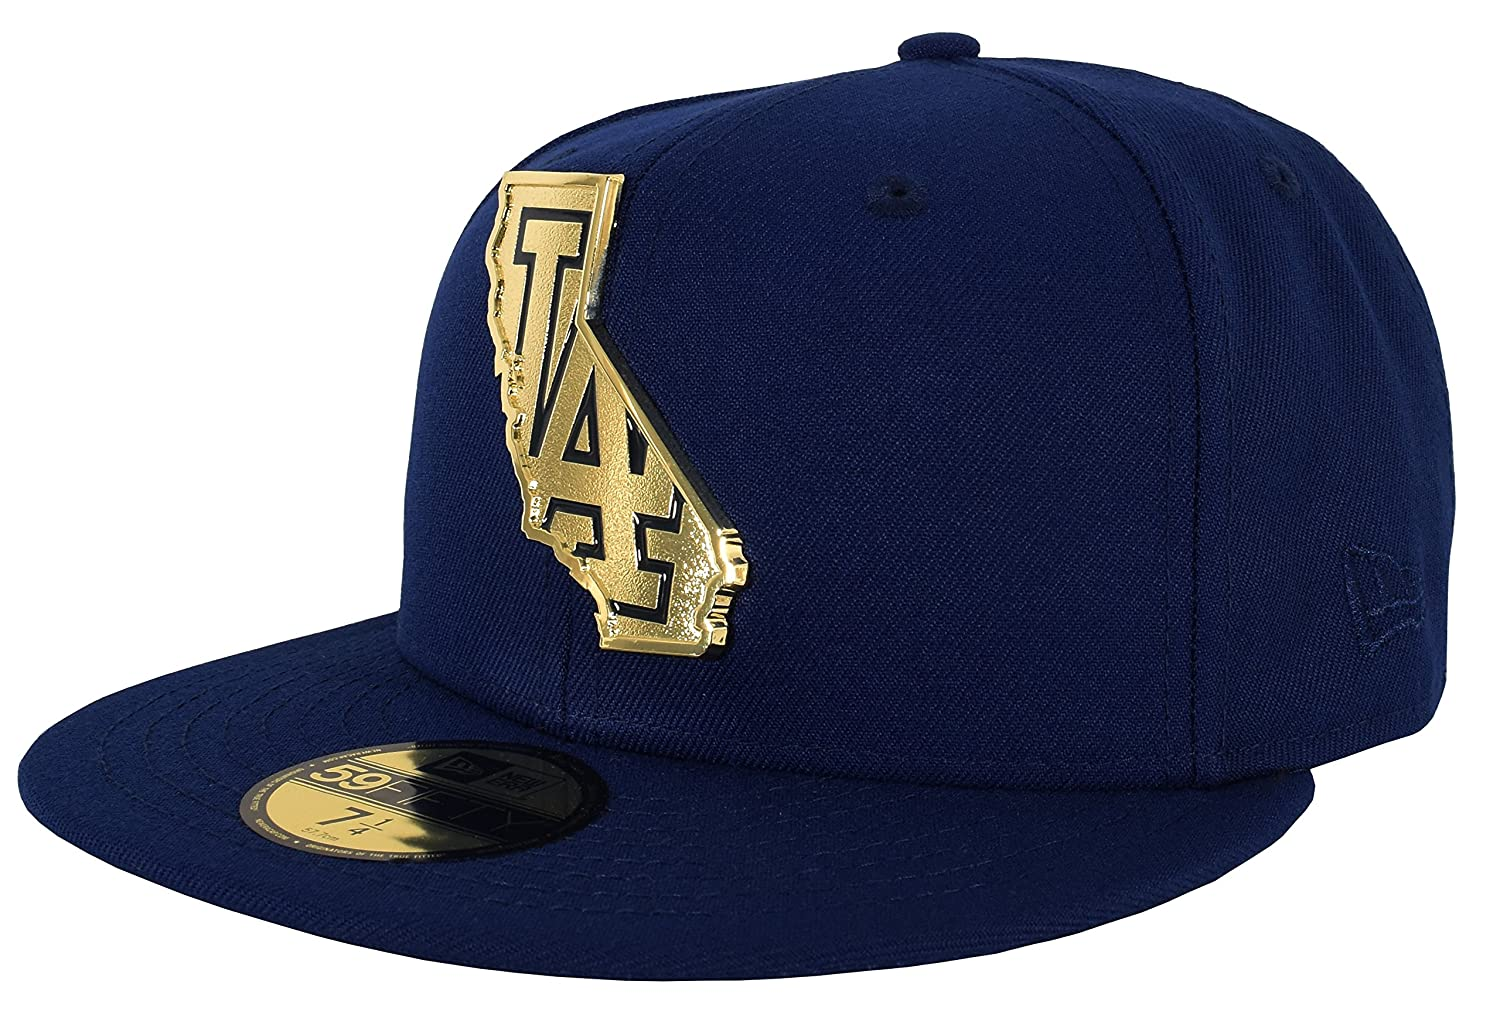 new arrival e6f95 14f6d Amazon.com   New Era 59Fifty Gold Stated Fitted Cap   Sports   Outdoors